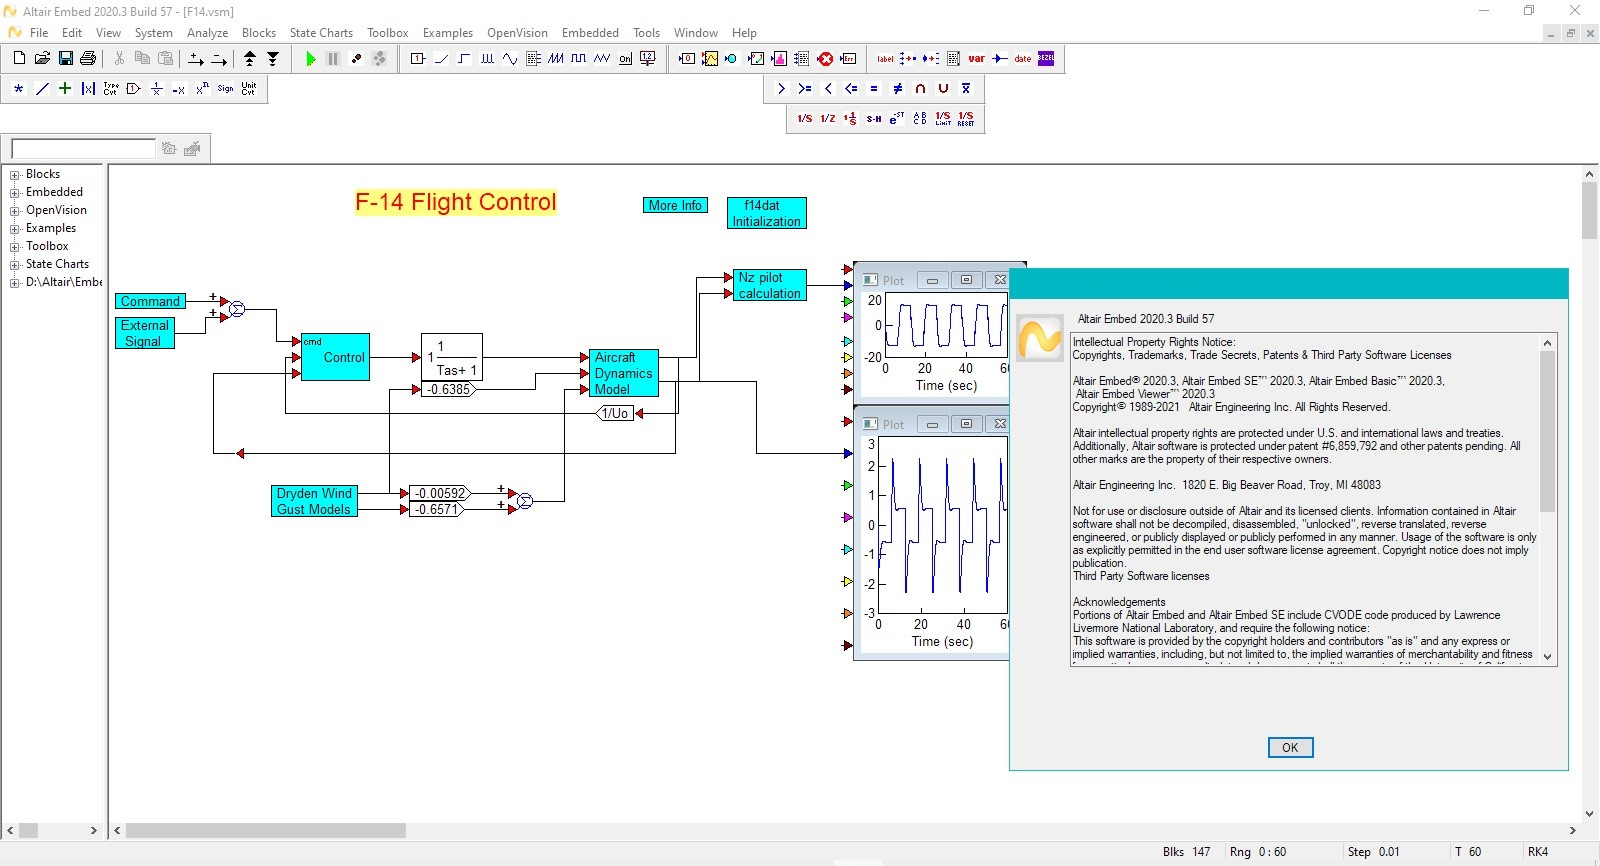 Working with Altair Embed 2020.3 Build 57 full